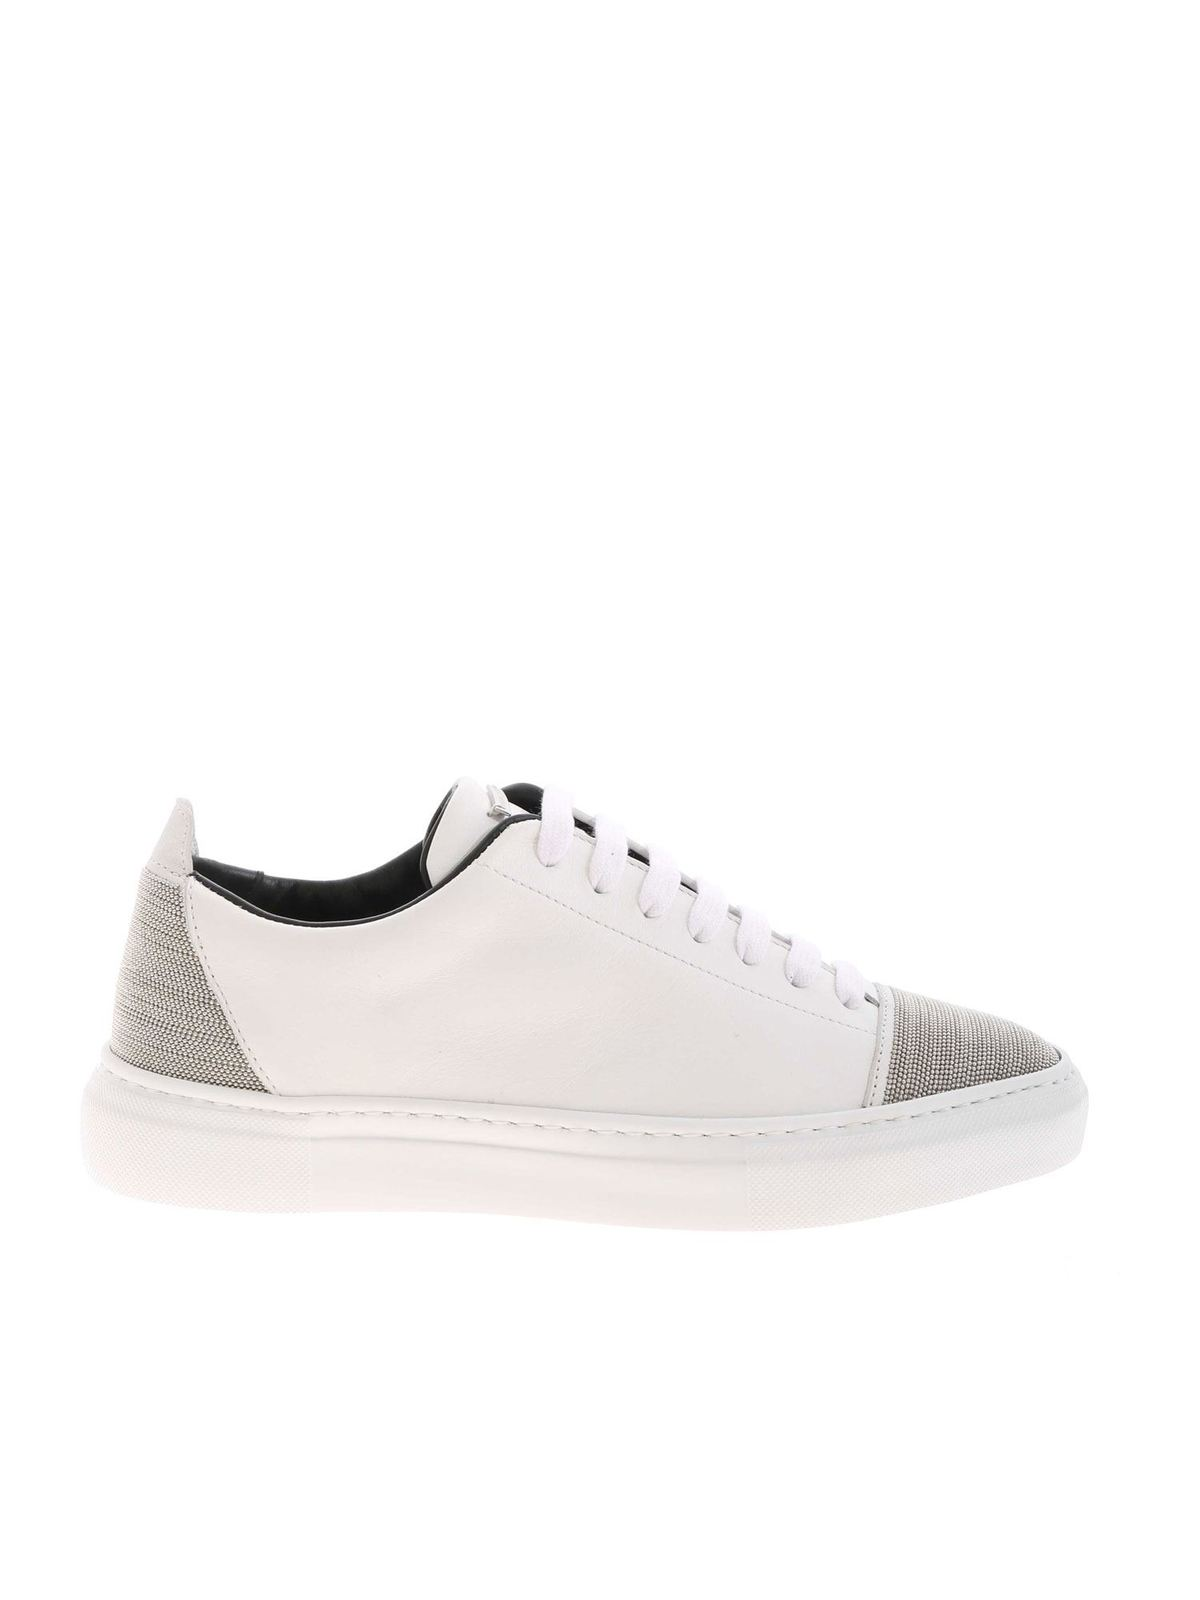 Fabiana Filippi MICRO BEADS SNEAKERS IN WHITE